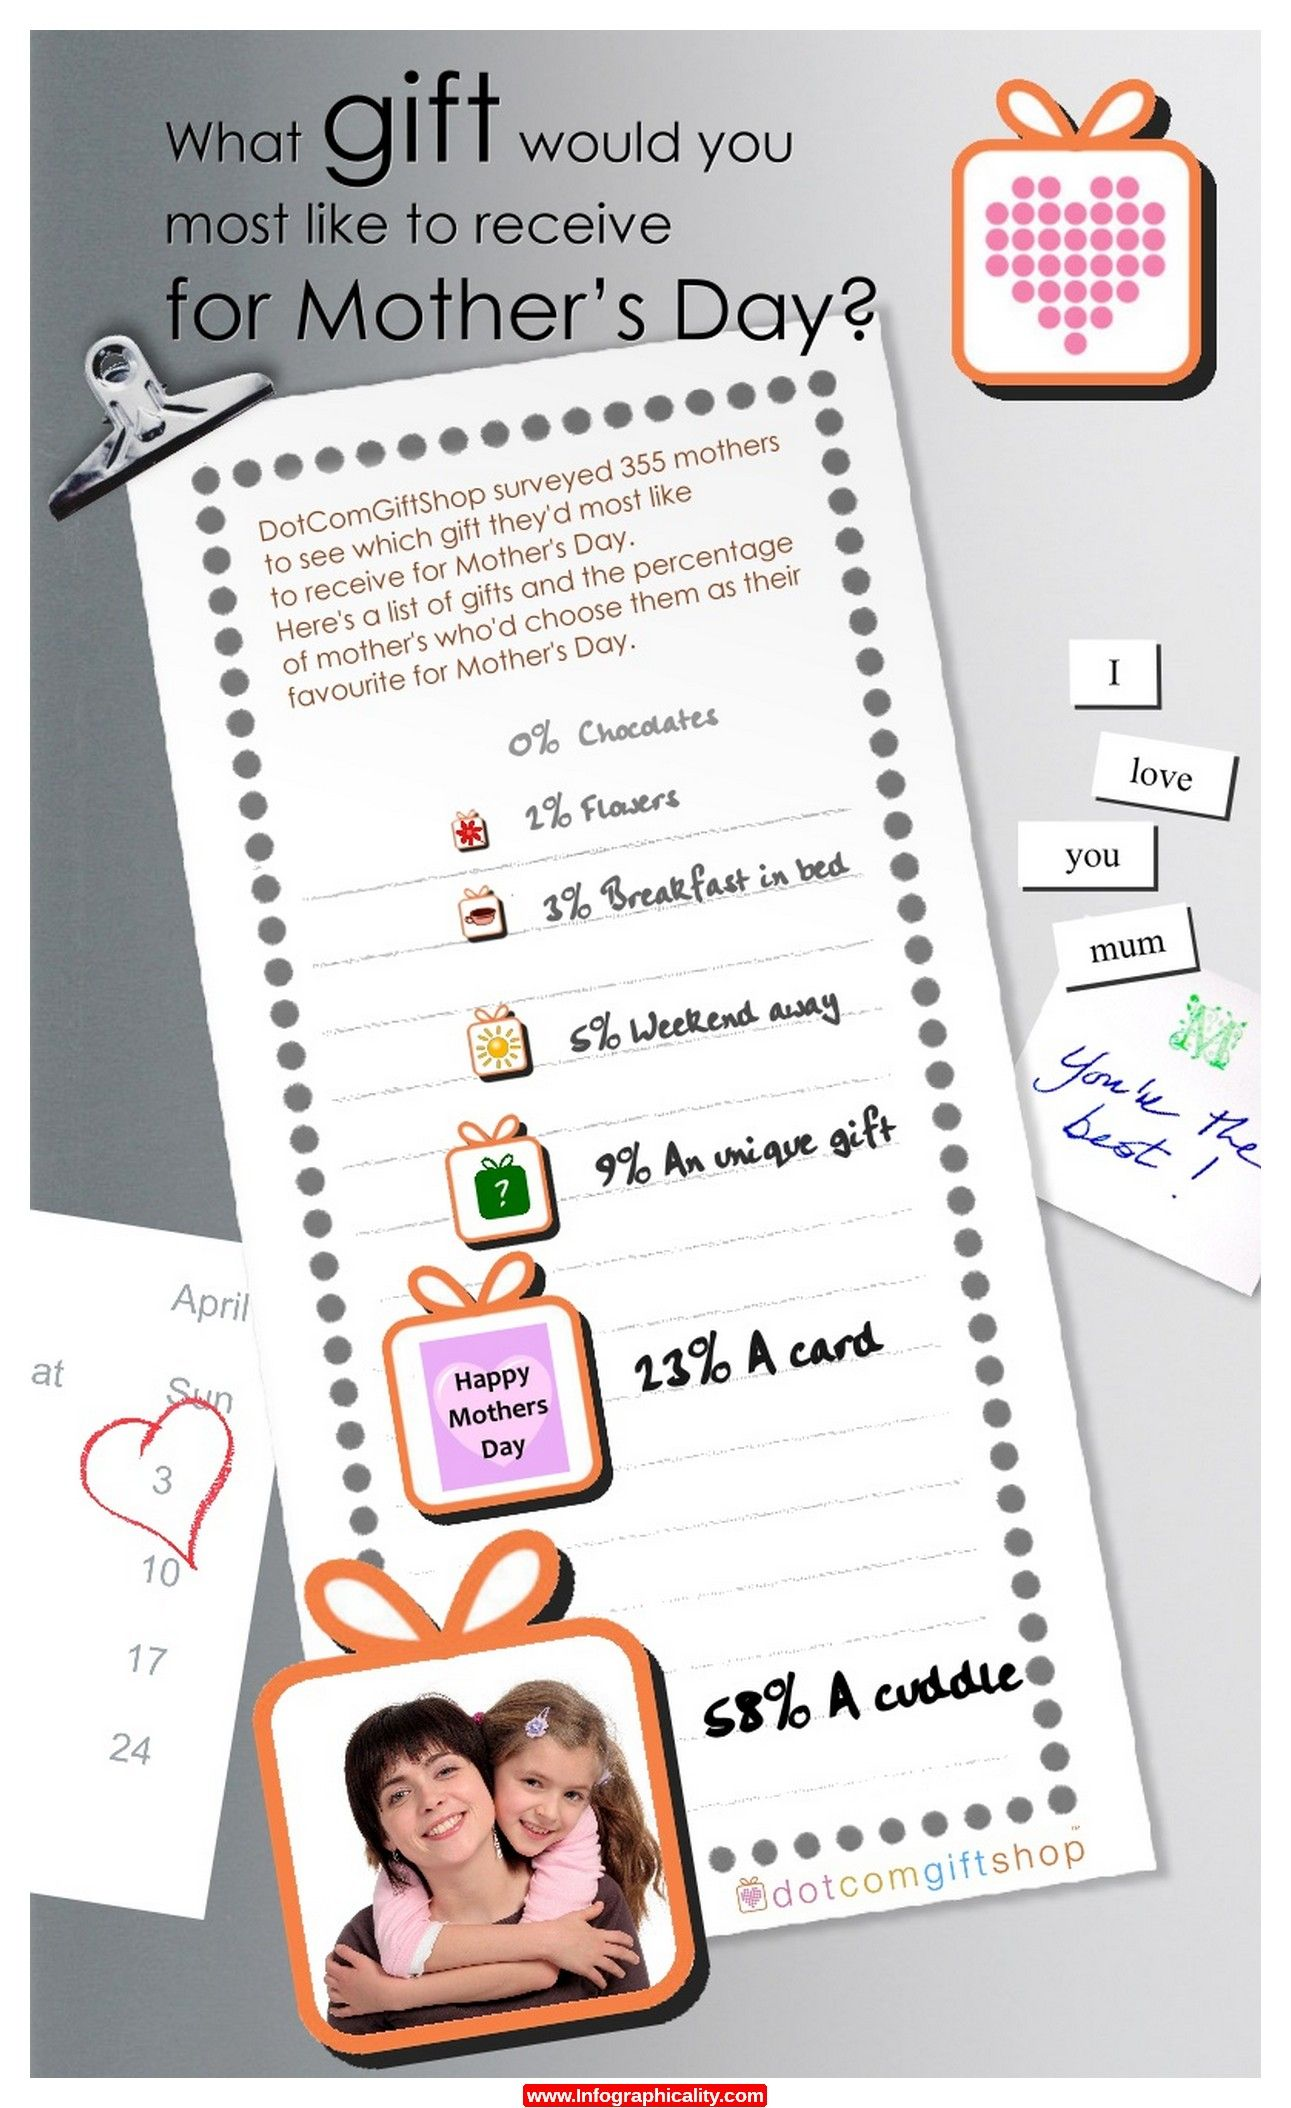 Md3 Infographic - http://infographicality.com/md3-infographic/